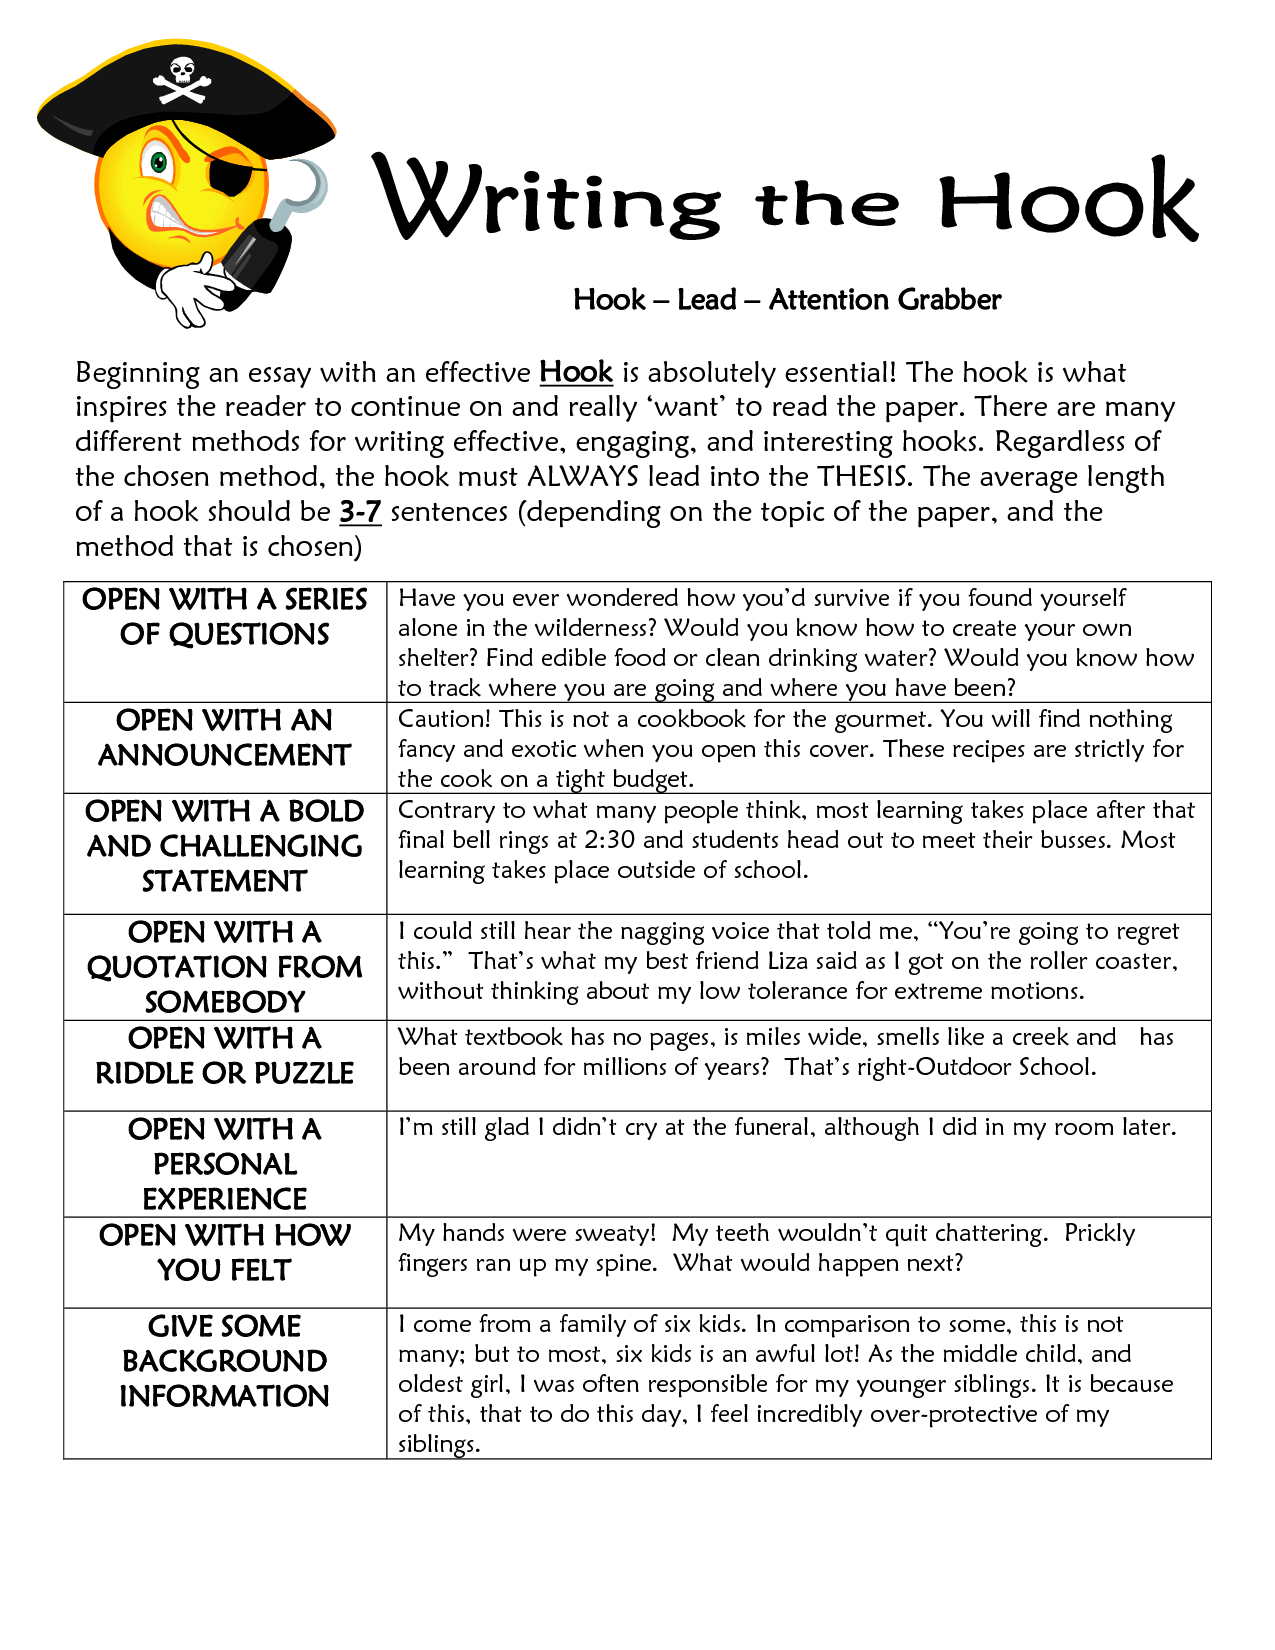 What is a good hook sentence for my essay?